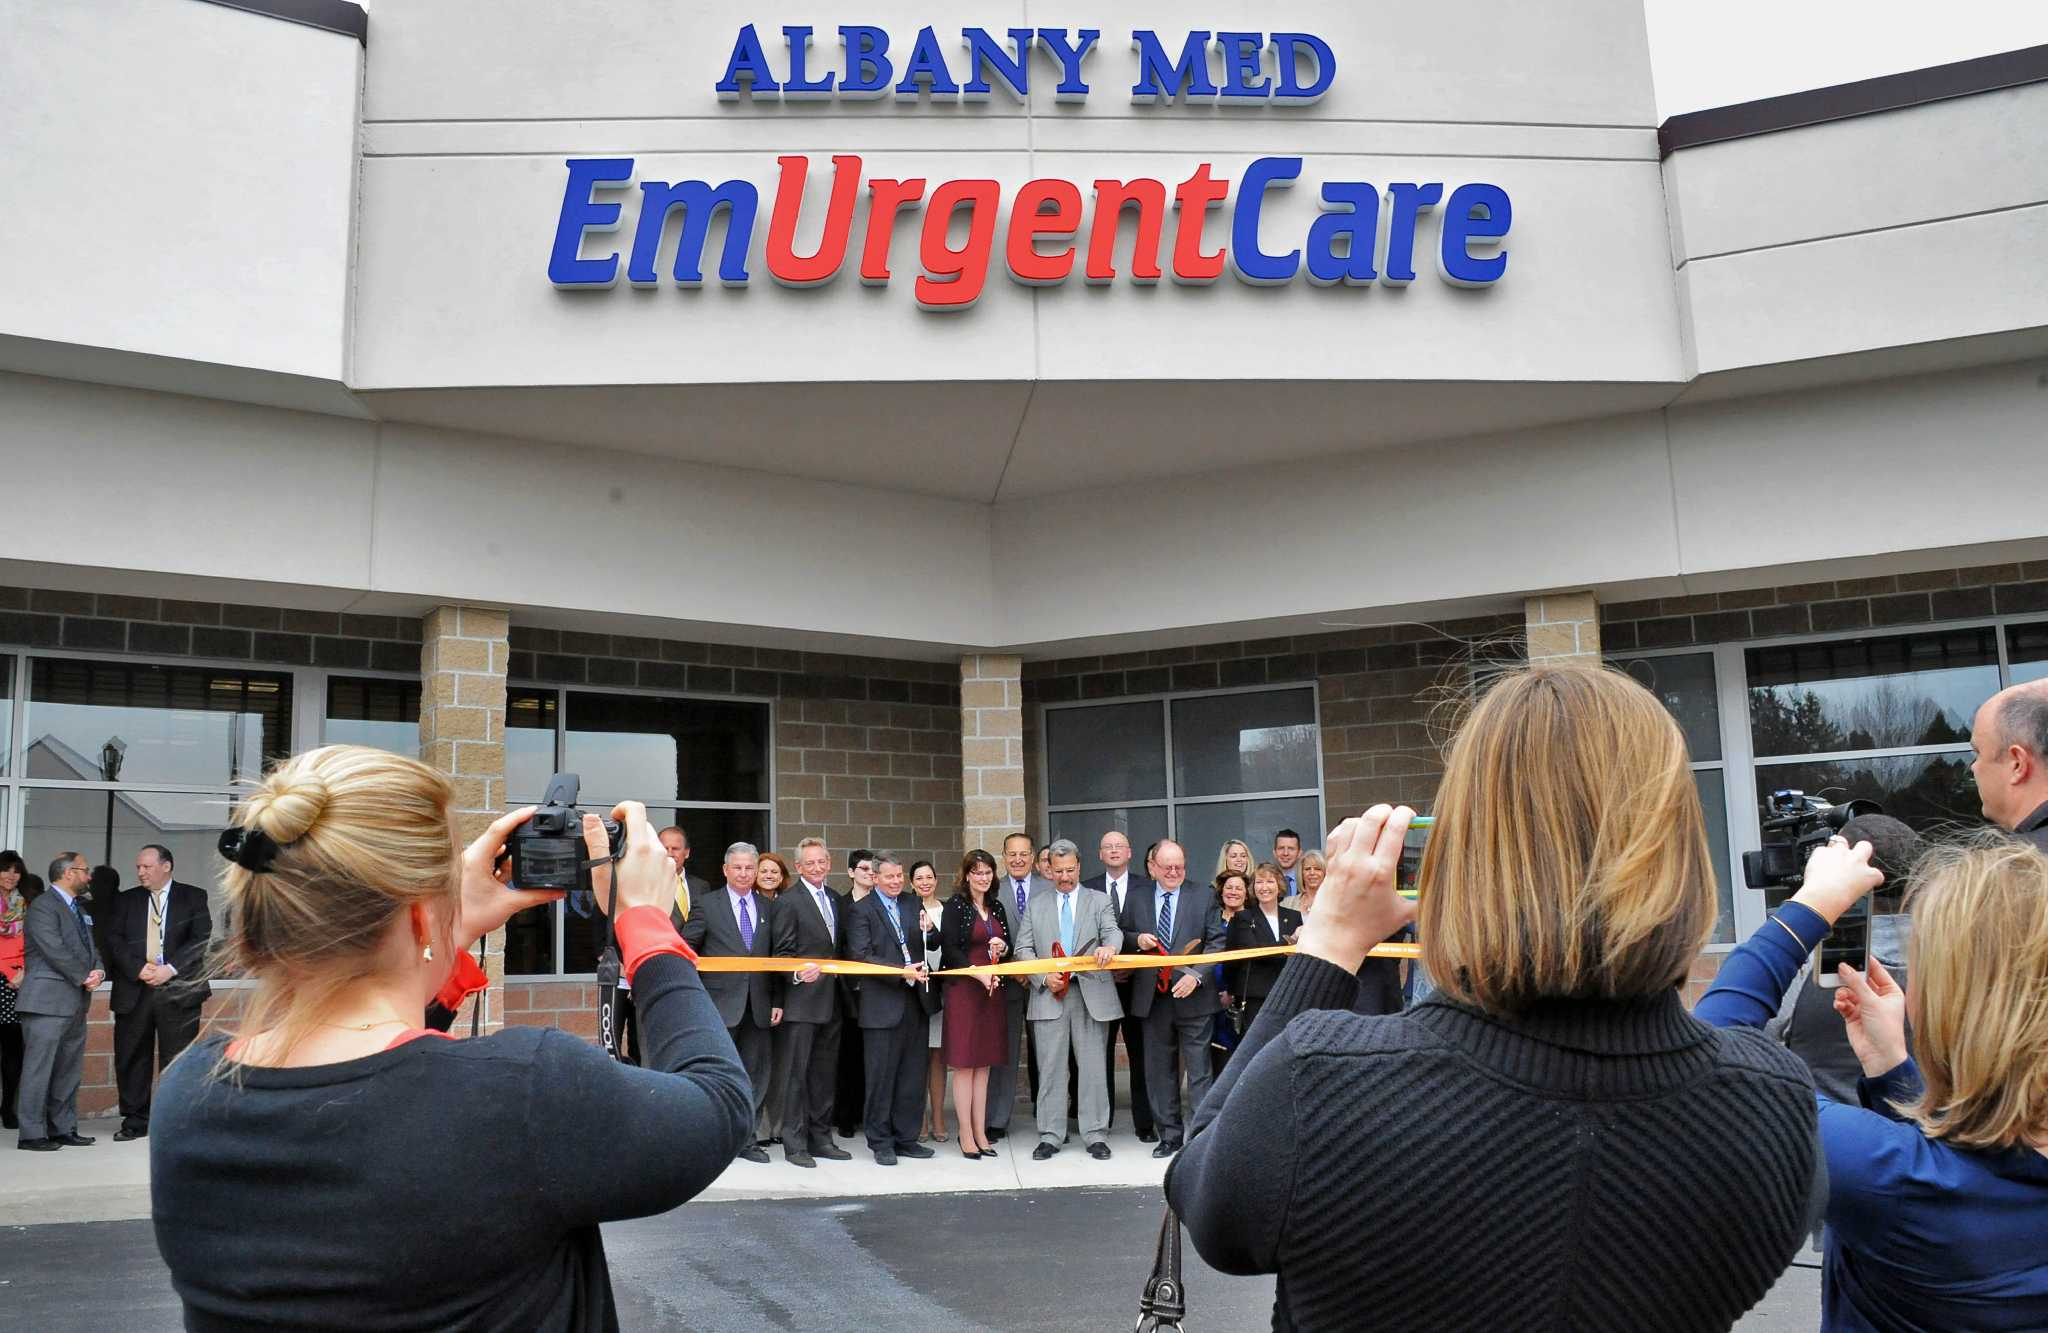 Albany teen center is open